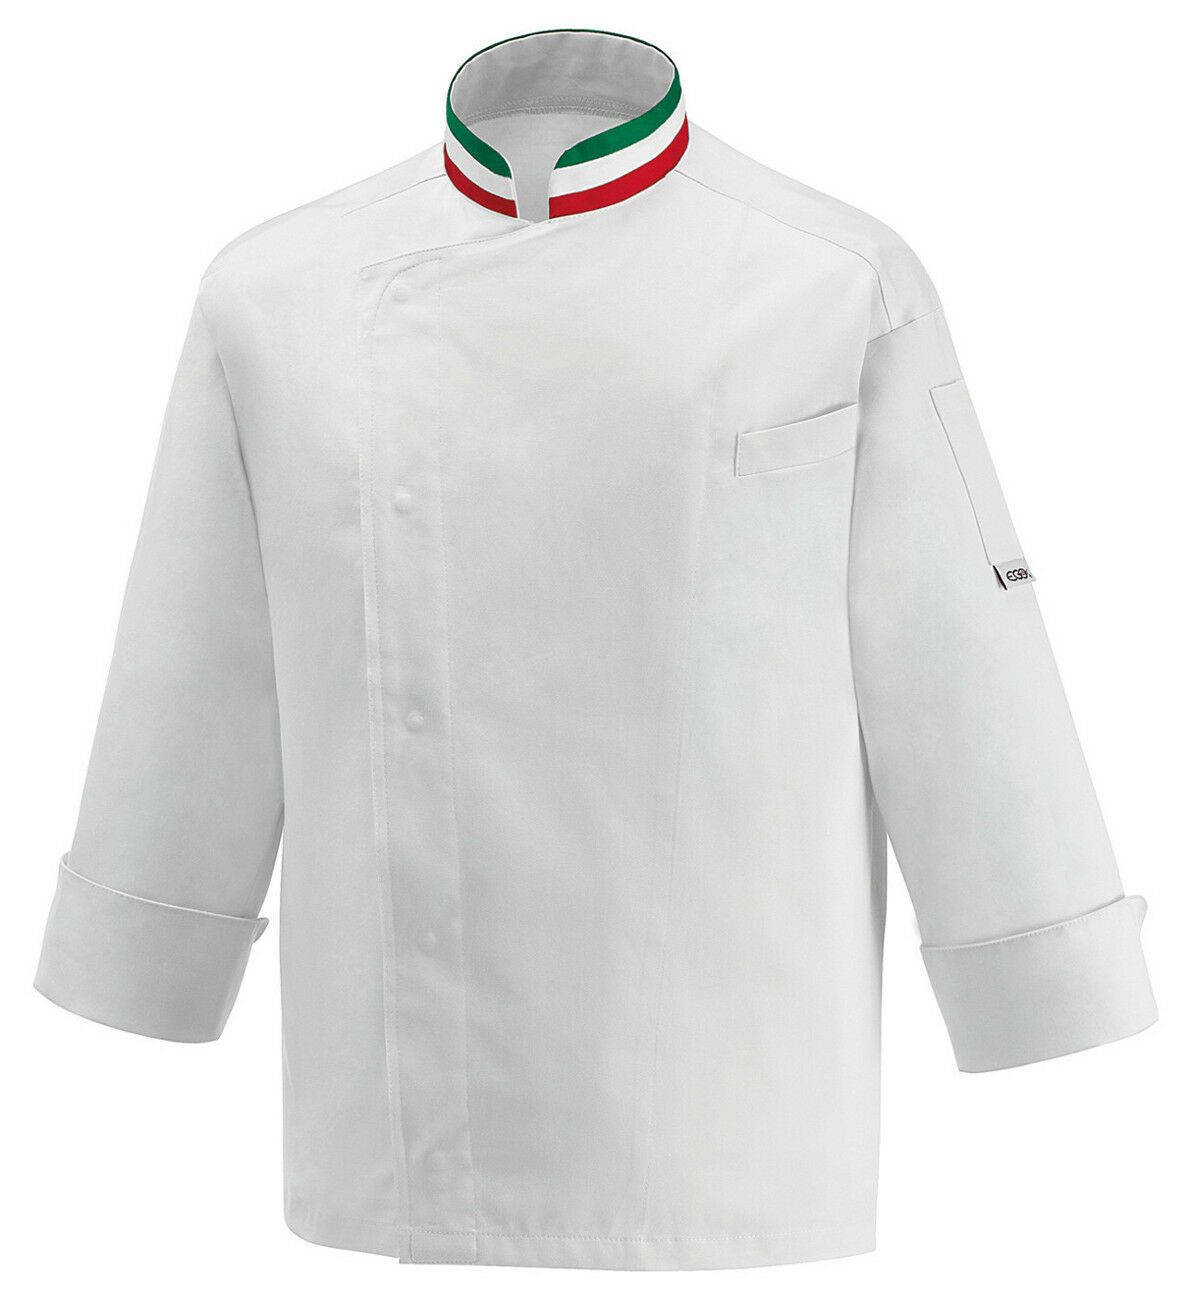 GIACCA CUOCO BANDIERA COLLETTO ITALIA EGOCHEF MADE IN ITALY FLAG CHEF TRIcolor